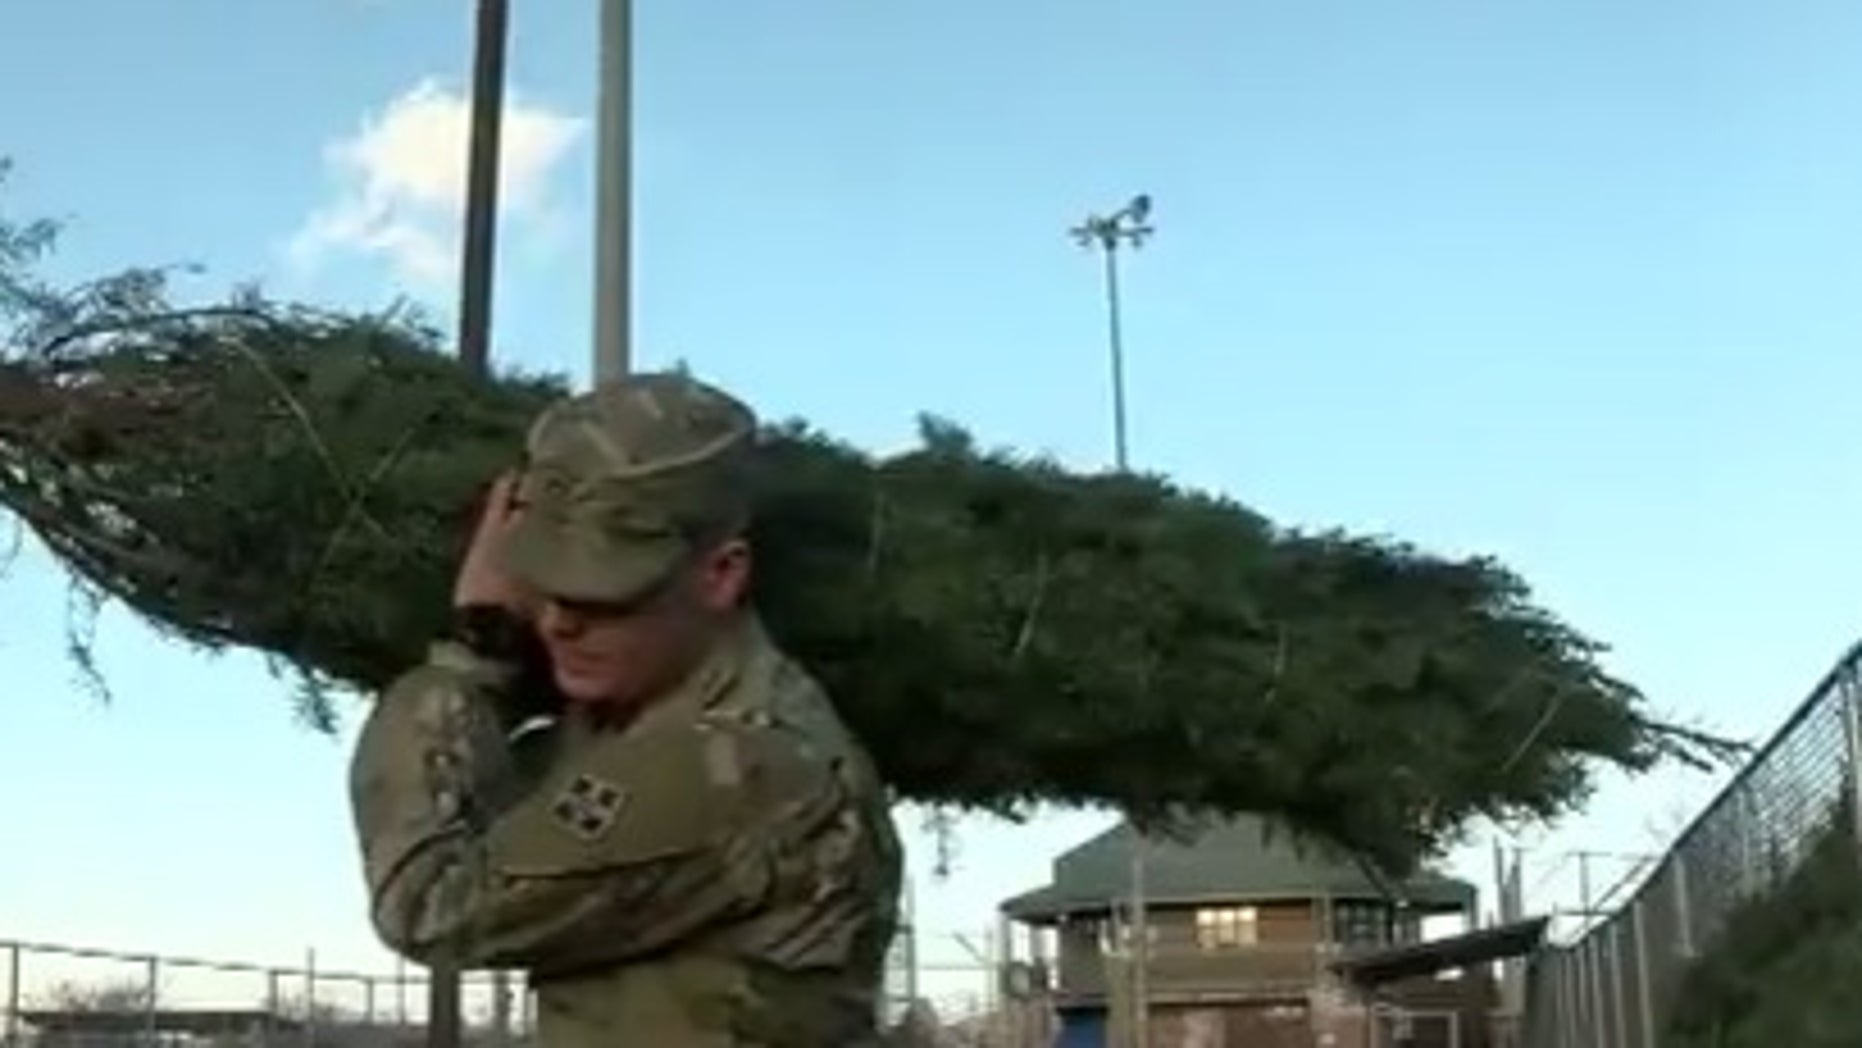 A special program is giving at least 500 military families free Christmas trees.